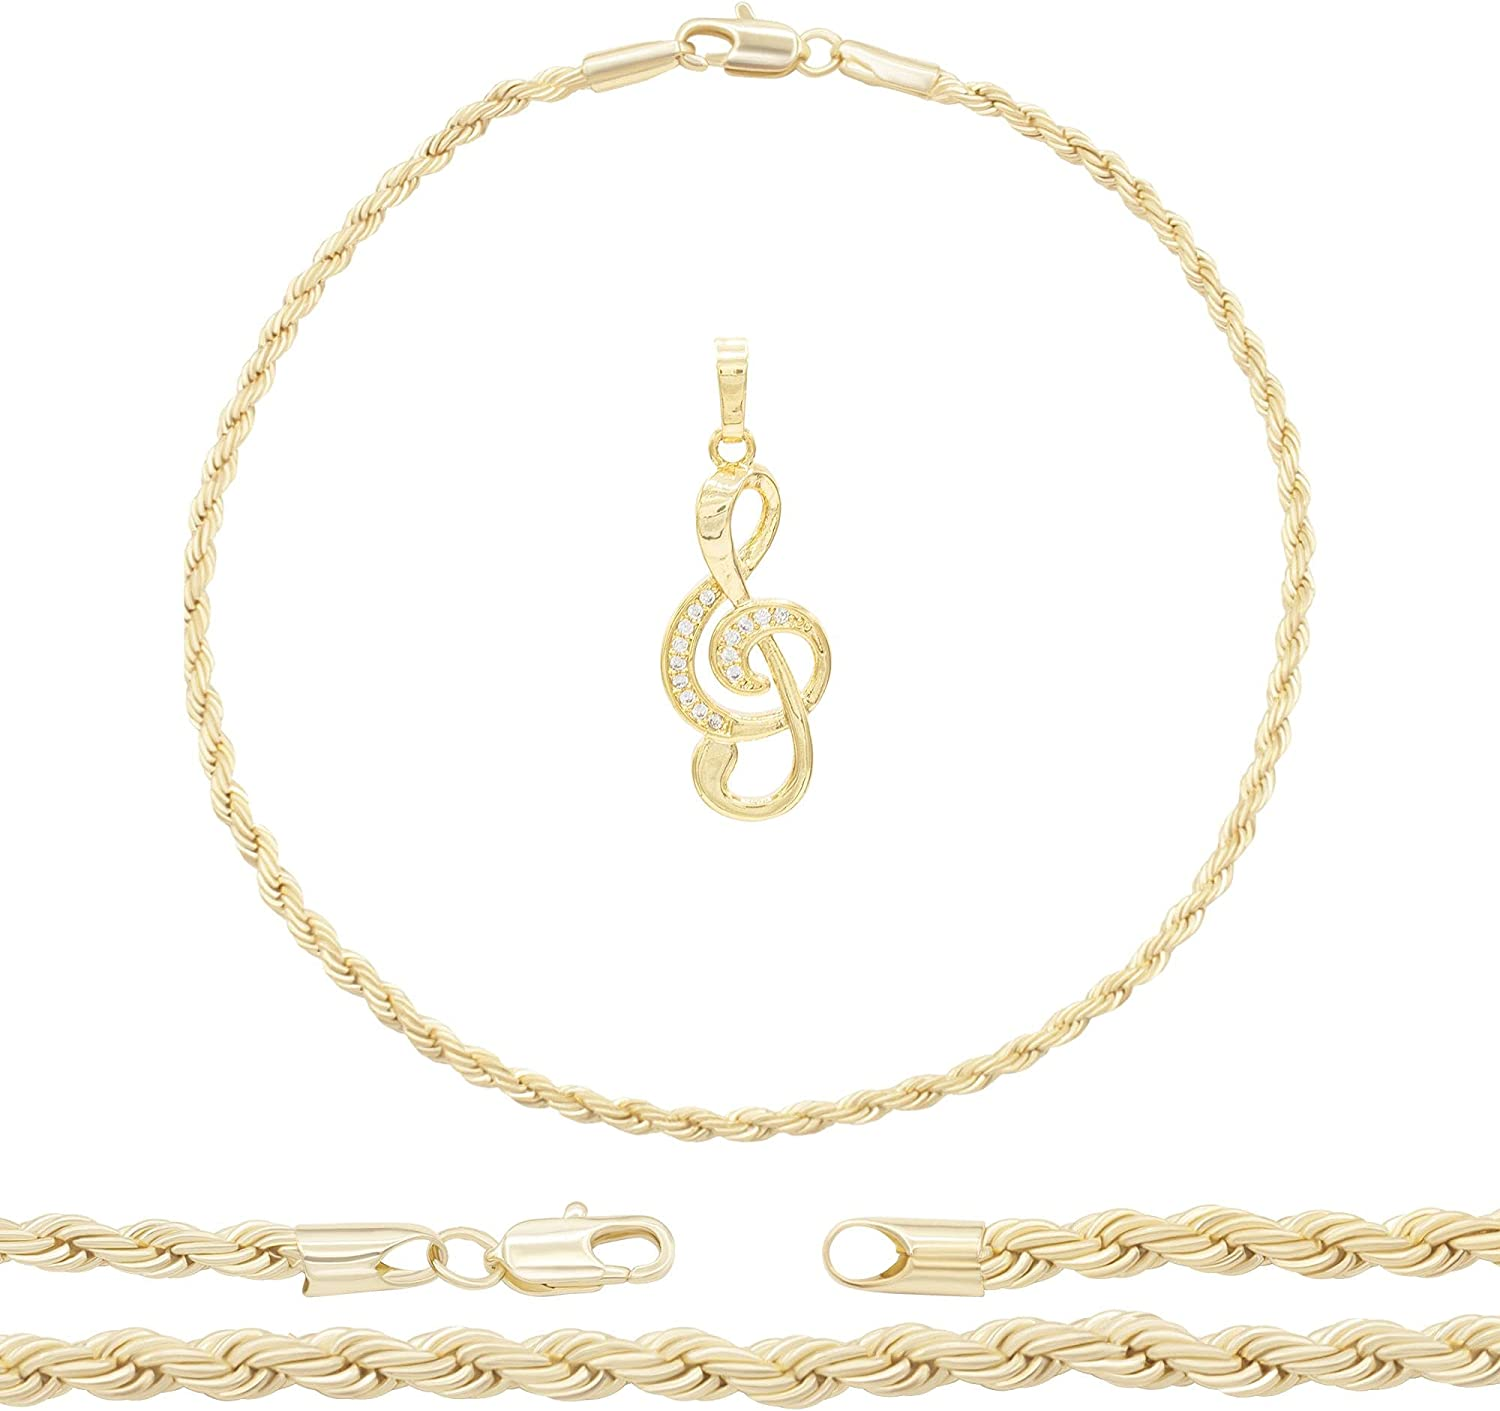 BEBERLINI Music Note Pendant 14K Gold Filled Cubic Zirconia Rope Chain Anklet 10